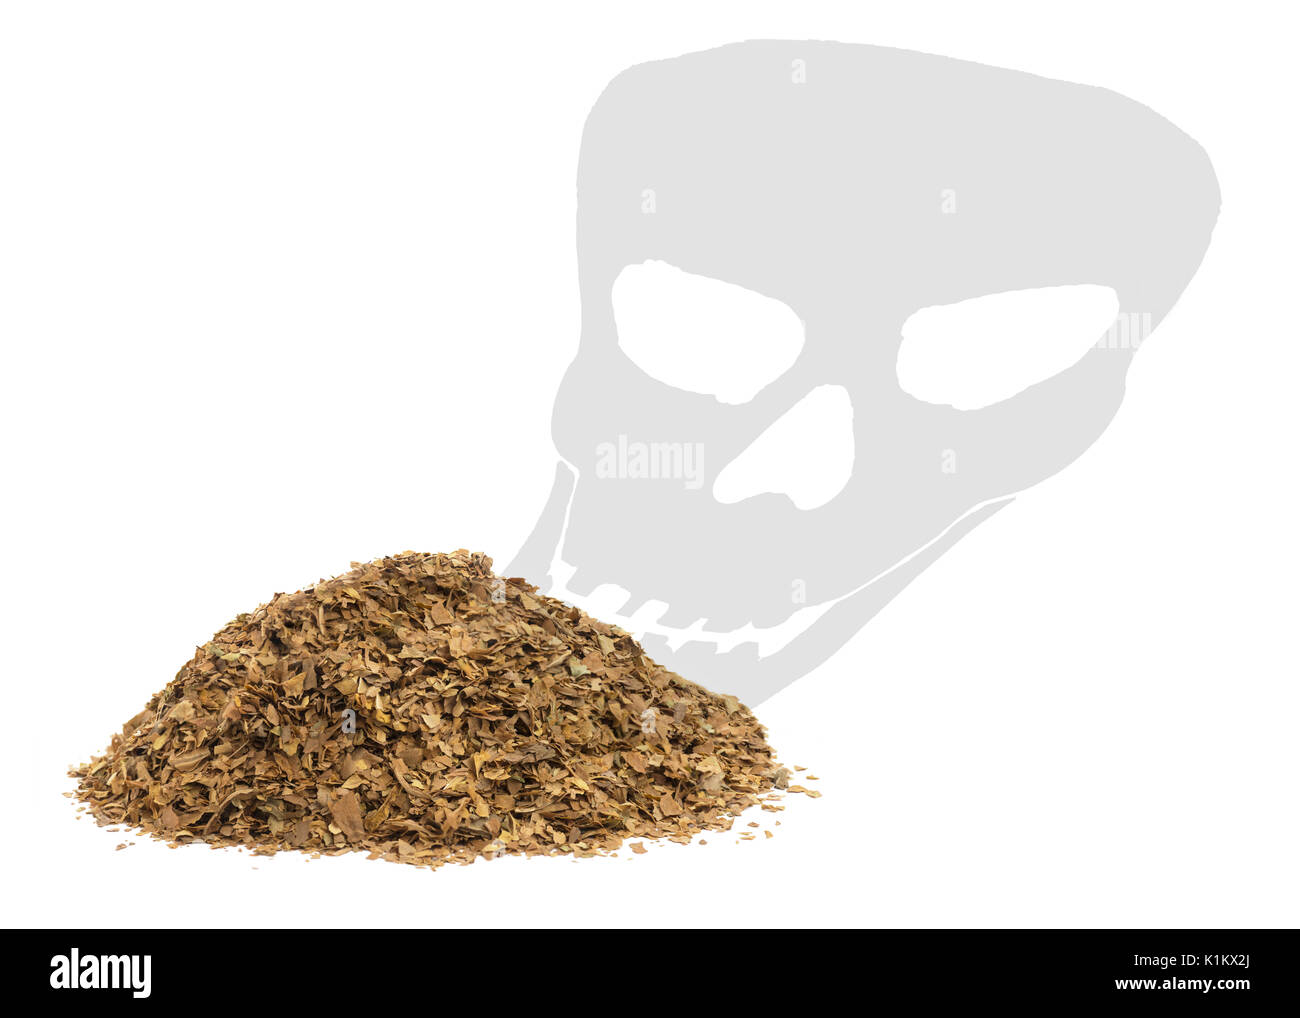 concept of smoking kills in a health warning  showing unprocessed dry tobacco leafs with a death skull shadow on a white background - Stock Image